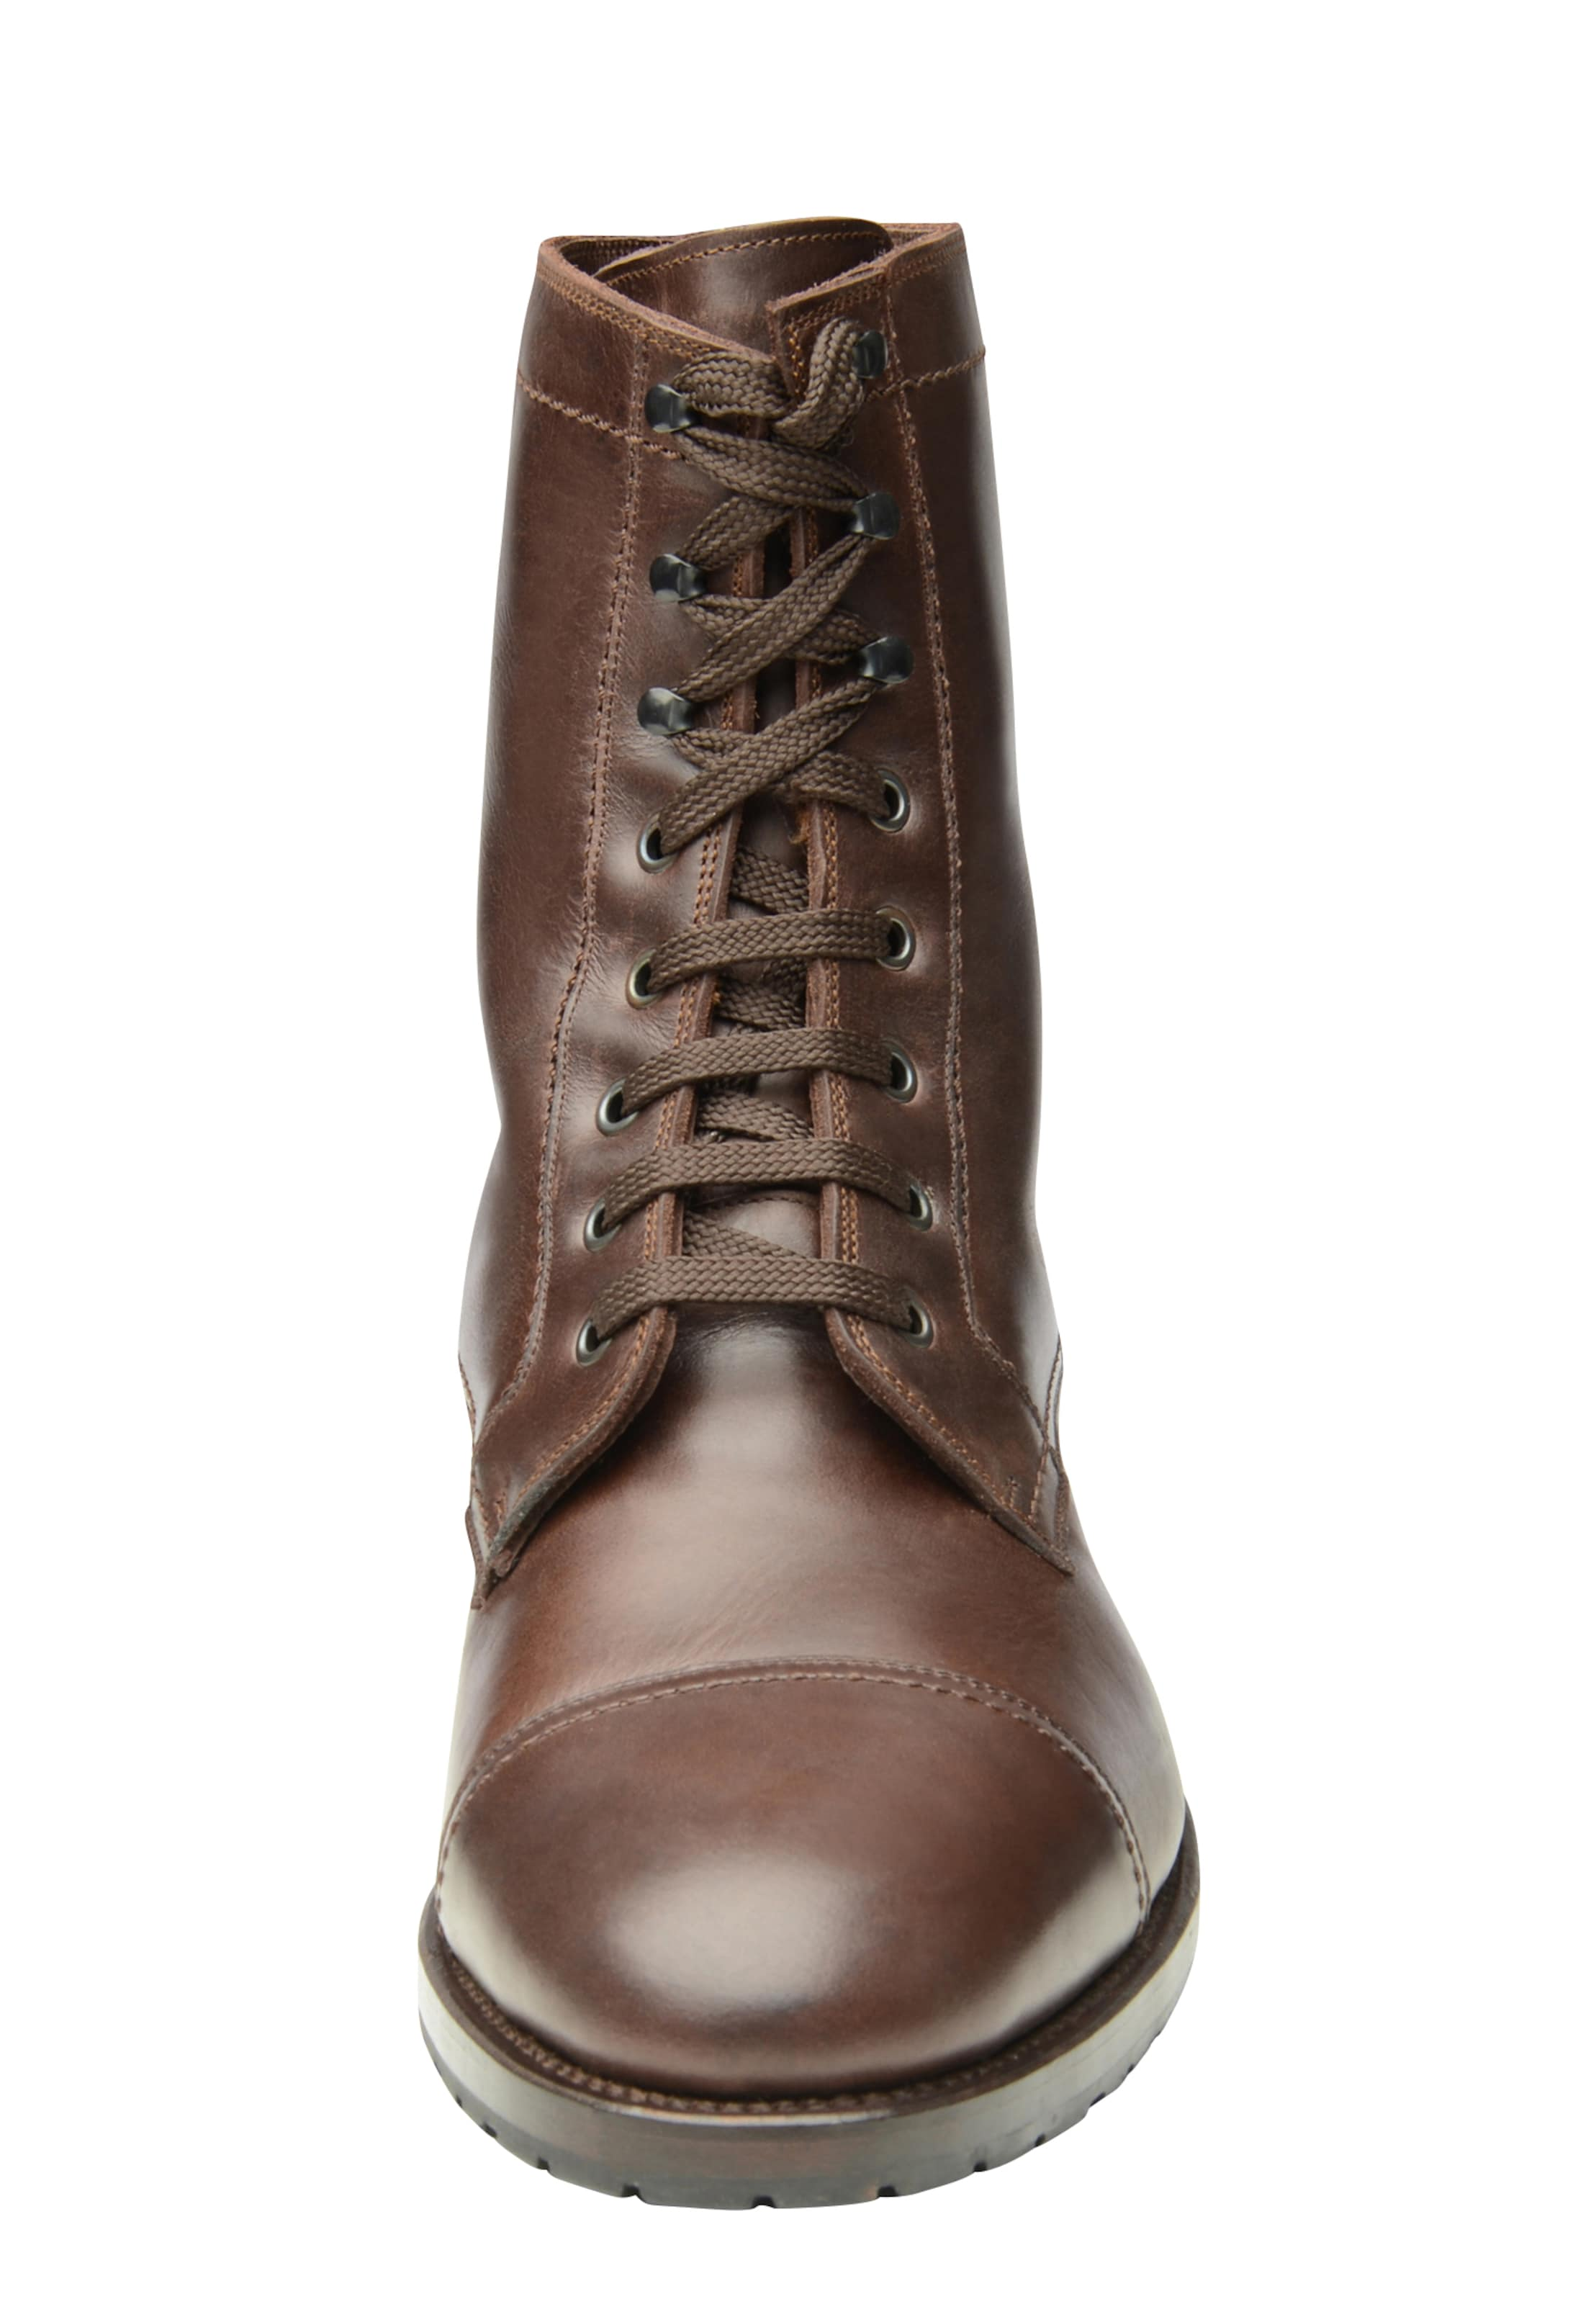 'no 672' In Chocoladebruin Veterboots Shoepassion 8UqE5nw